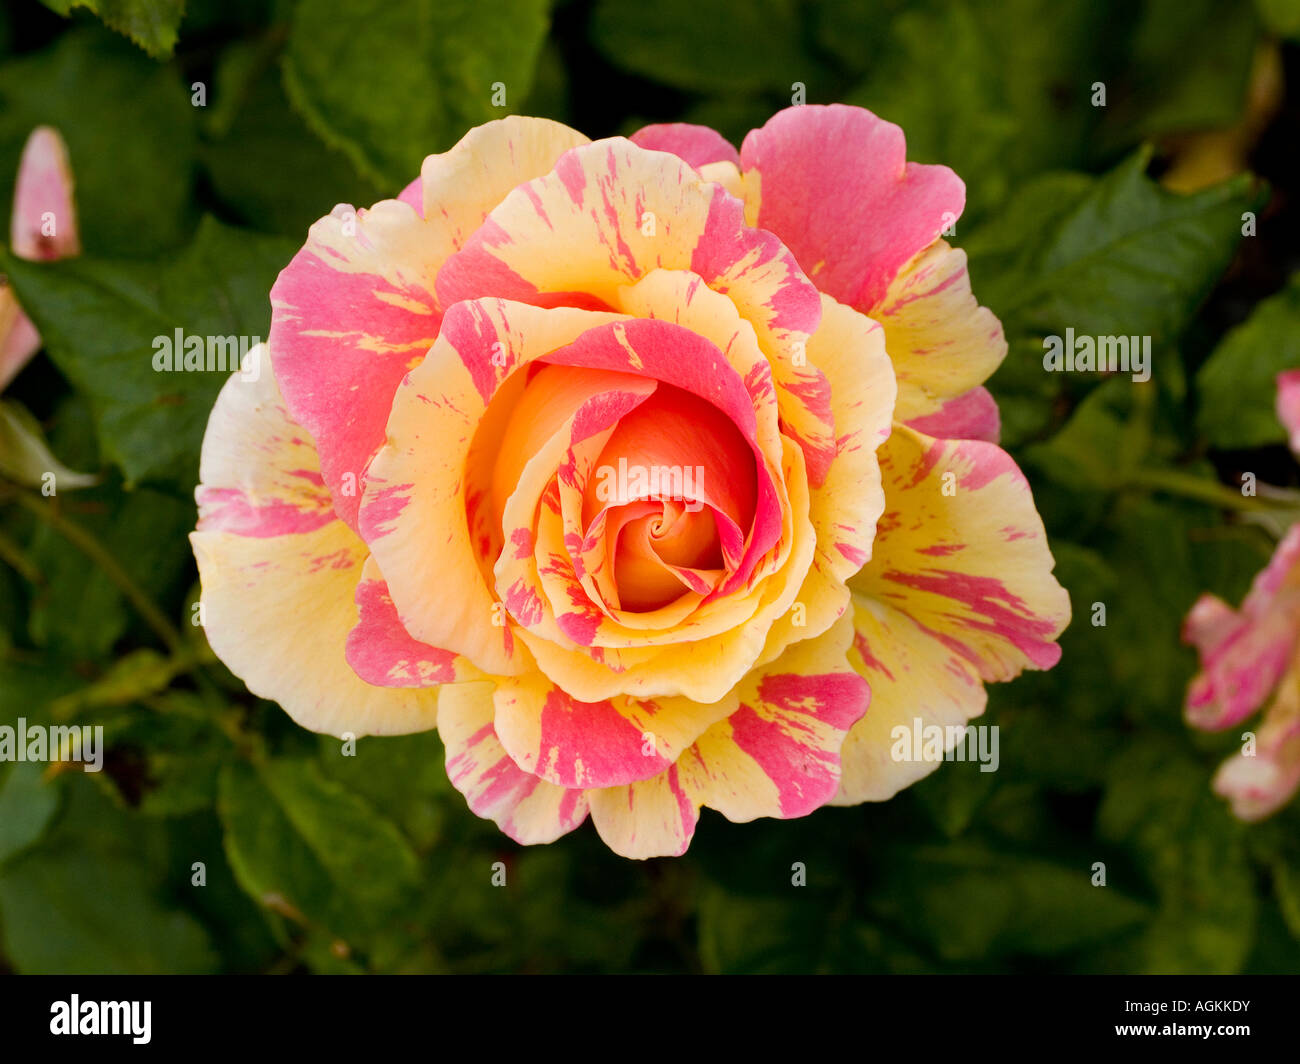 yellow and pink variegated rose bloom and leaves rosa. Black Bedroom Furniture Sets. Home Design Ideas